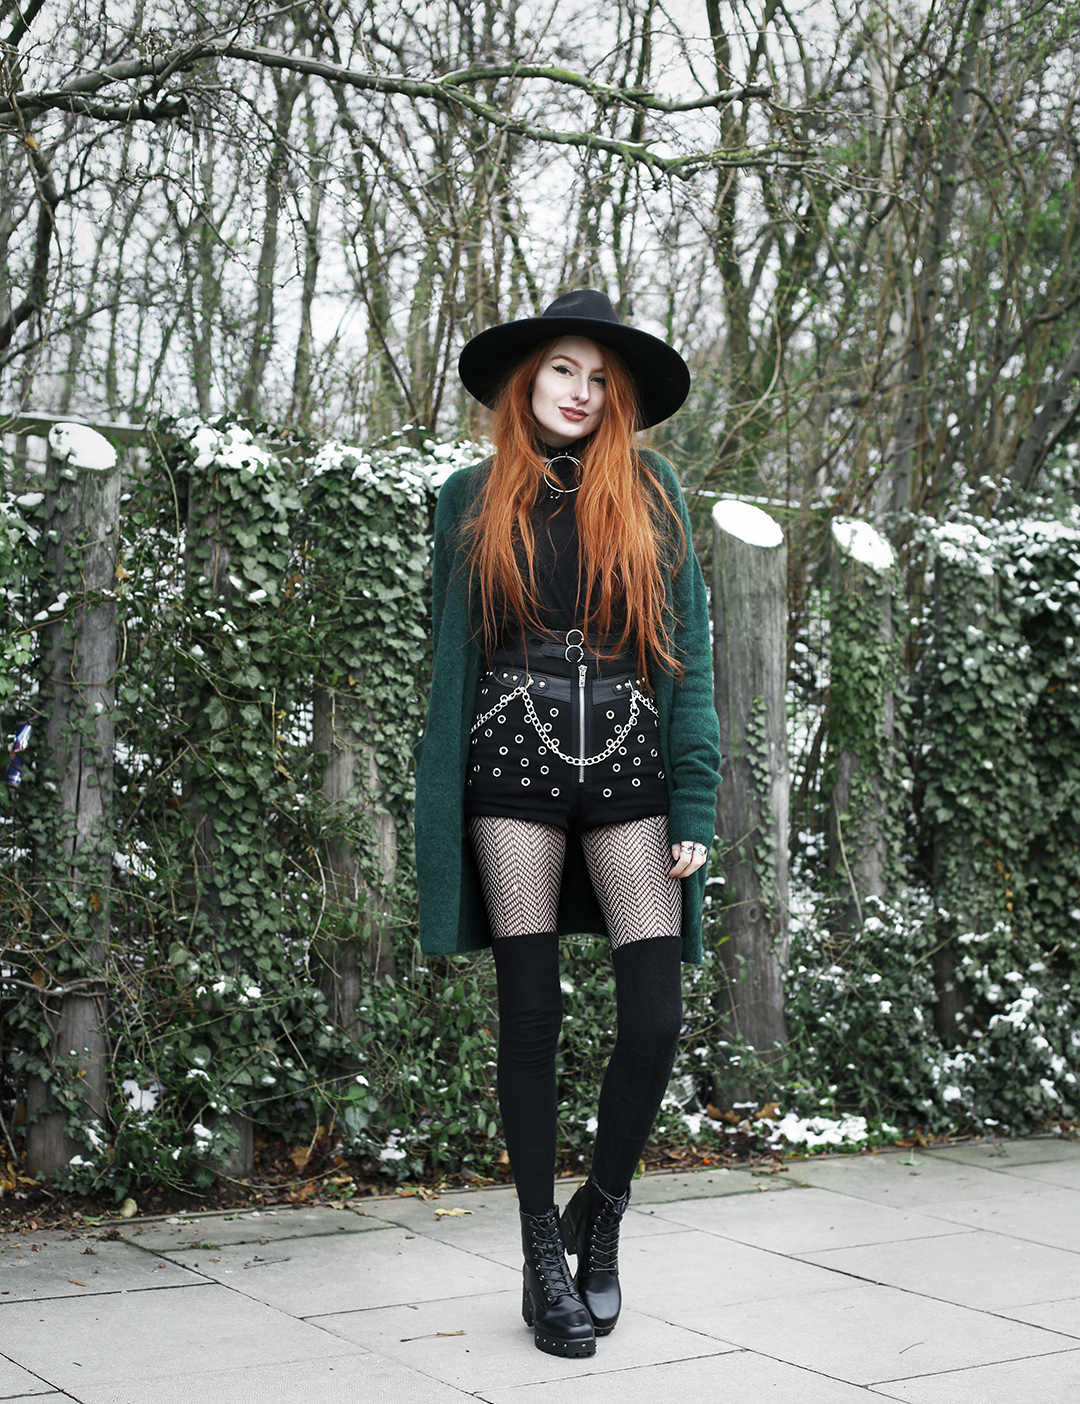 Olivia Emily styles up statement studded shorts for colder temperatures with cosy overknee socks, knitted cardigan and an oversized top